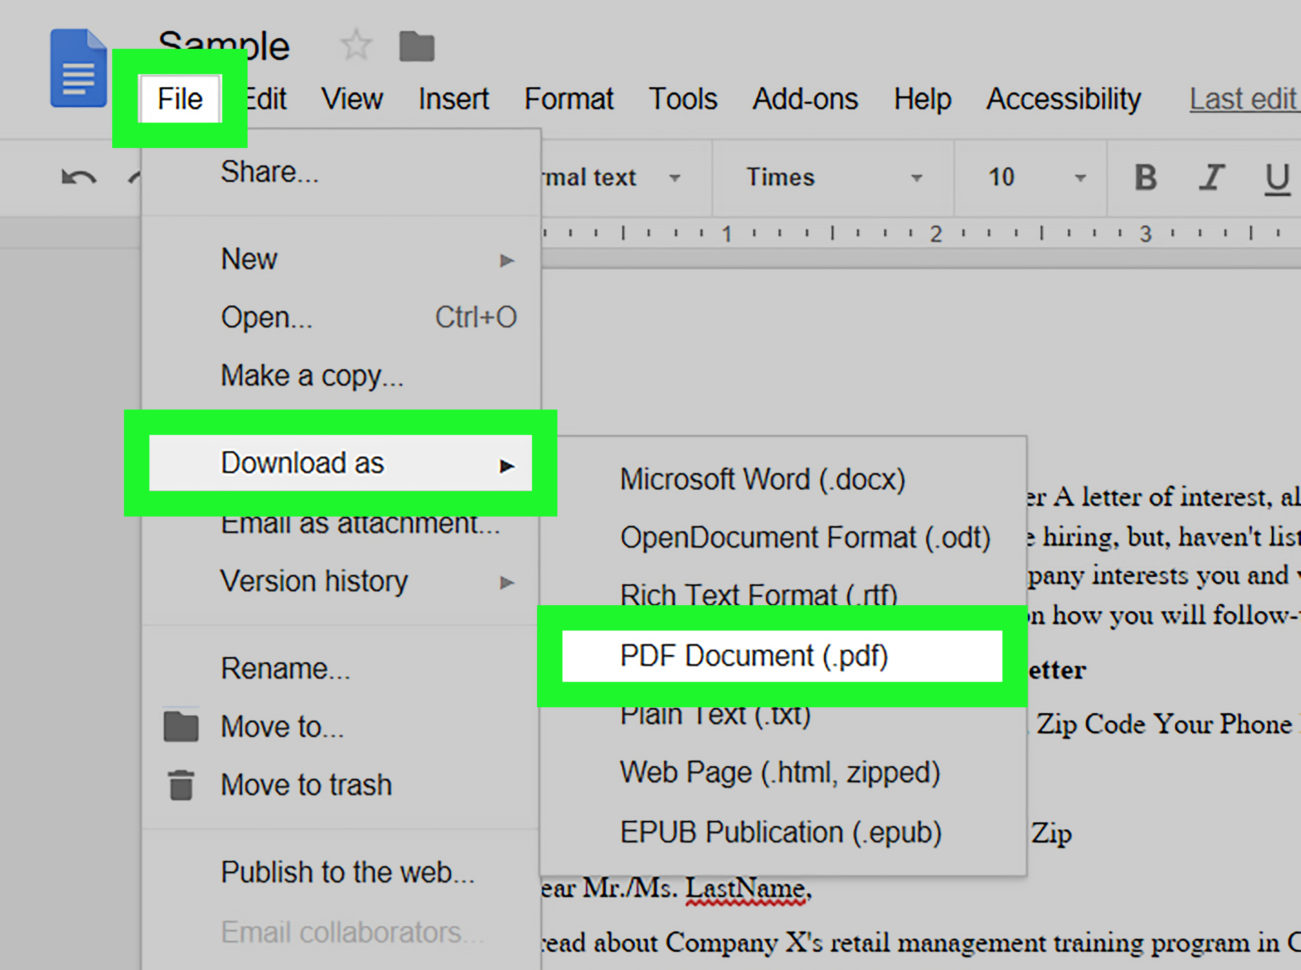 How To Make An Excel Spreadsheet Into A Fillable Form Within How To Make Pdfs Editable With Google Docs: 11 Steps